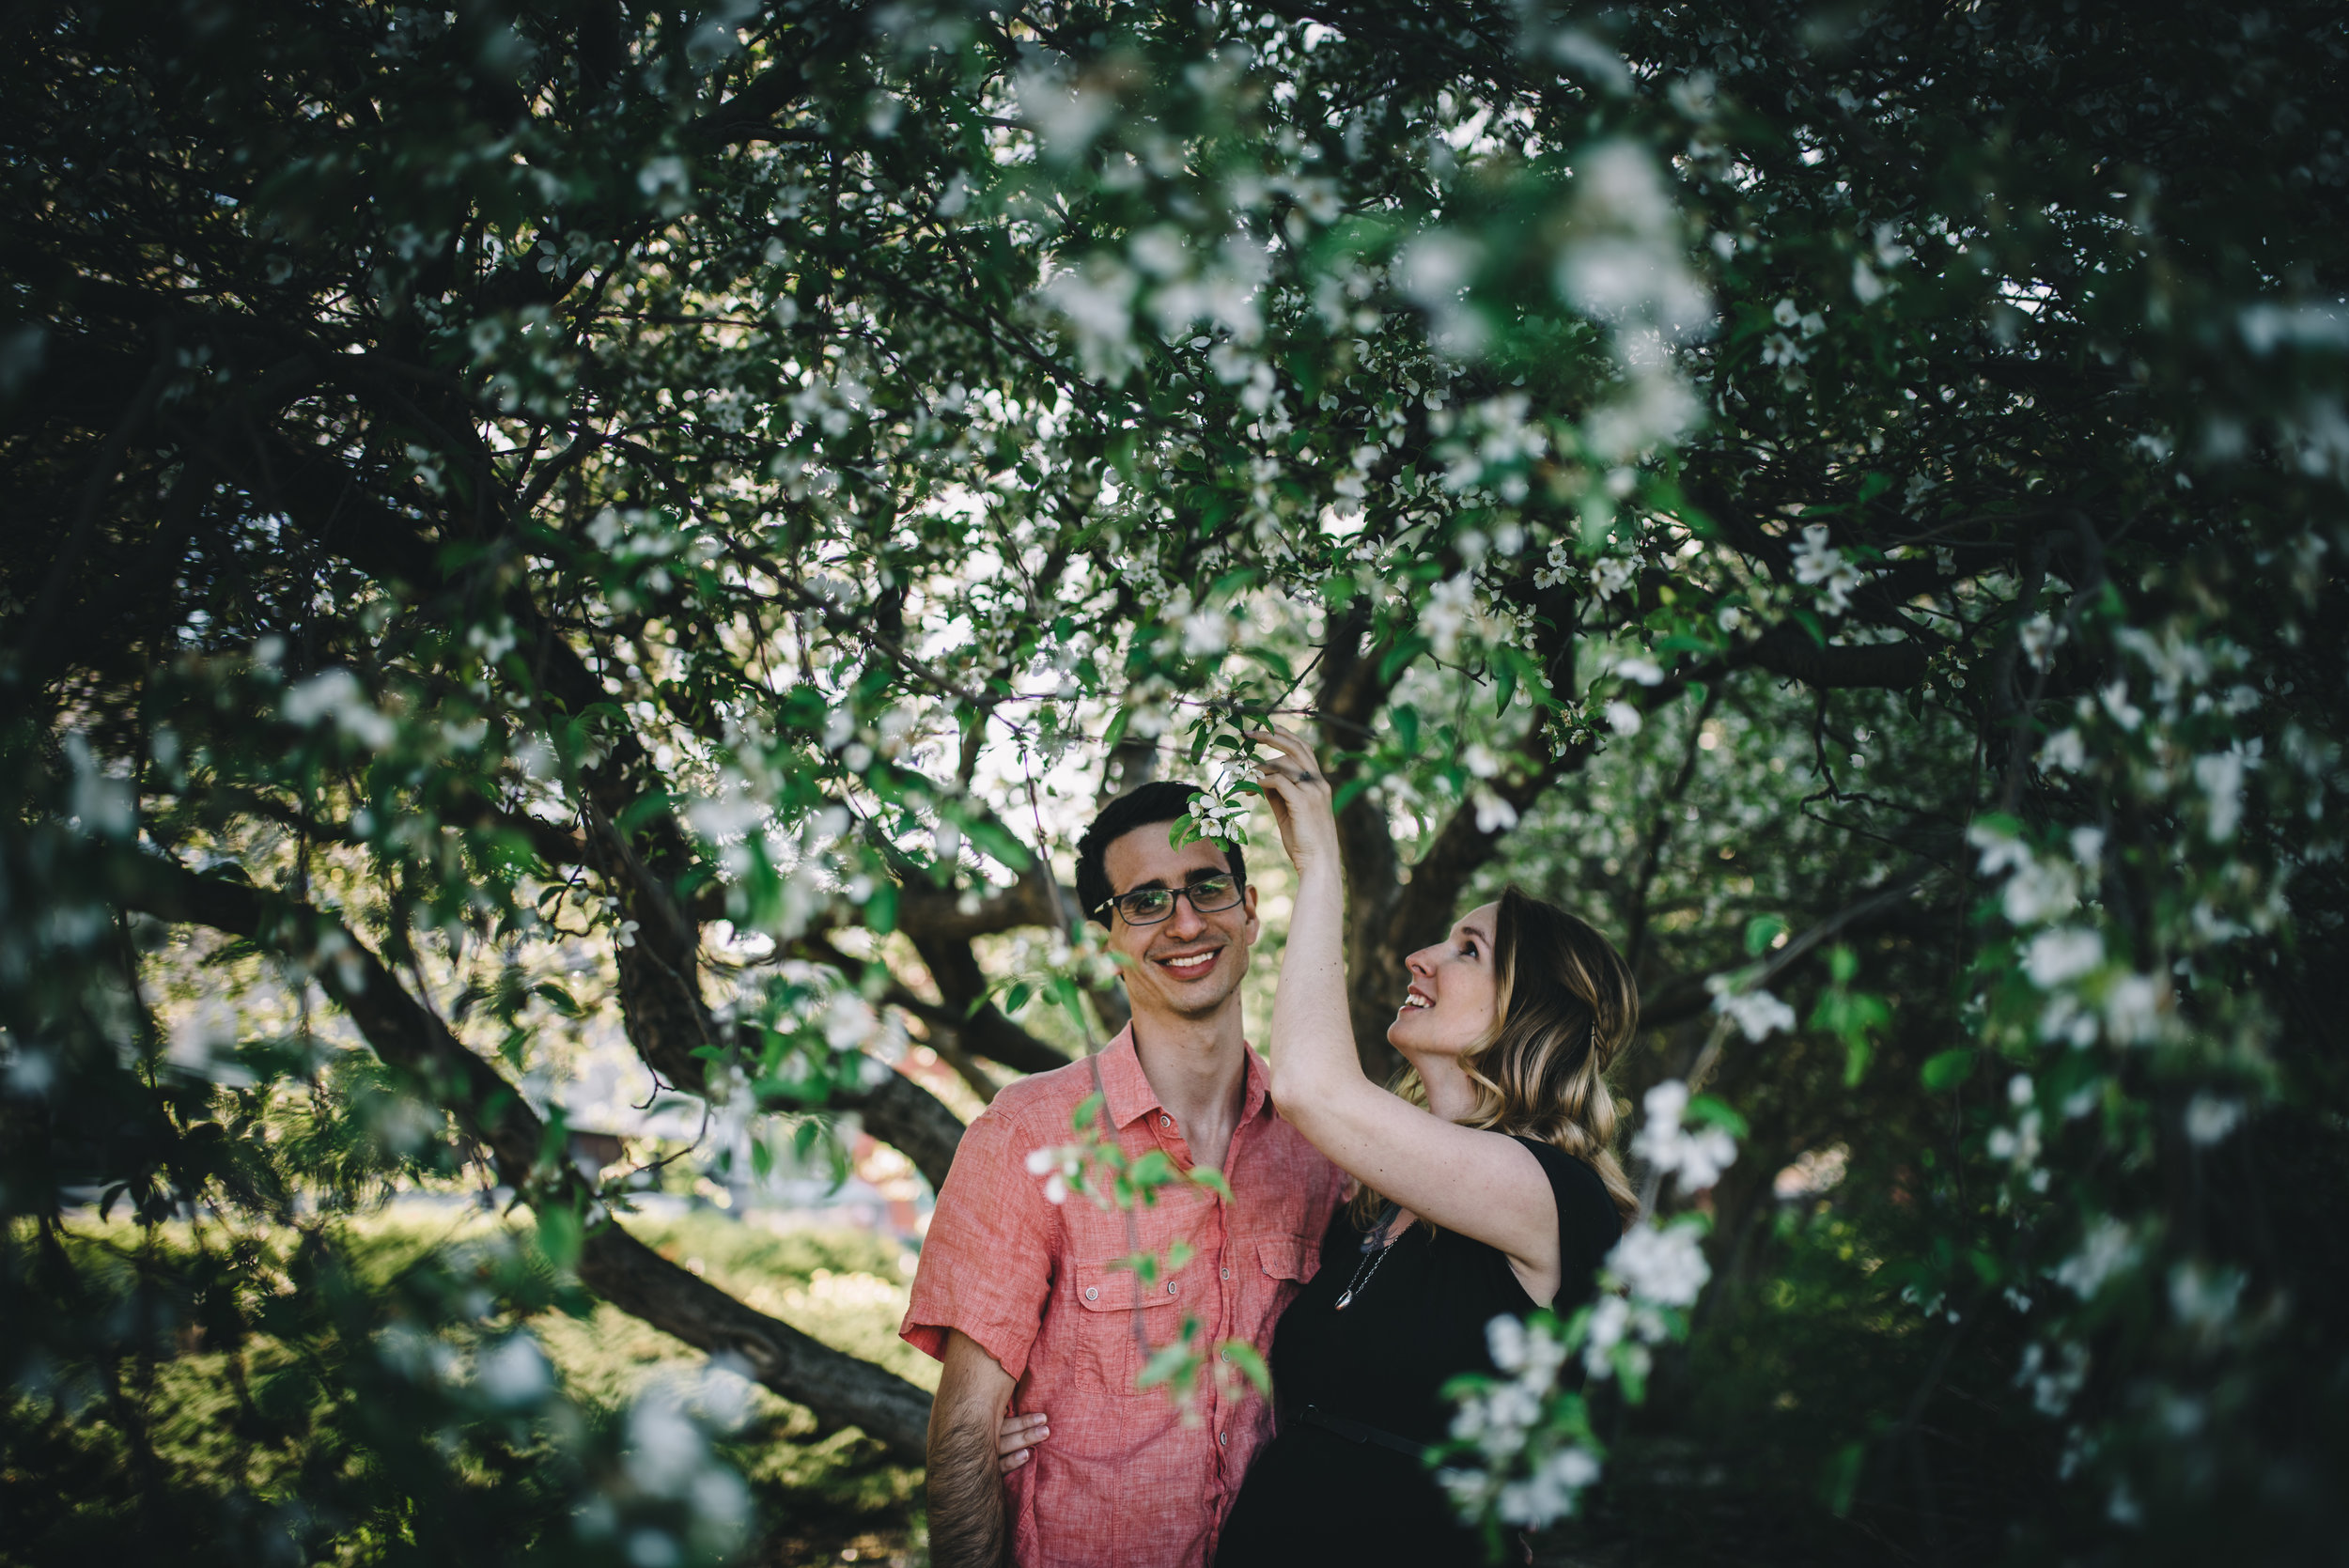 Mocha Tree Studios Ottawa Wedding and Engagement Photographer and Videographer Dark Moody Intimate Authentic Modern Romantic Cinematic Best Candid HOW TO PREPARE FOR YOUR ENGAGEMENT SESSION 2